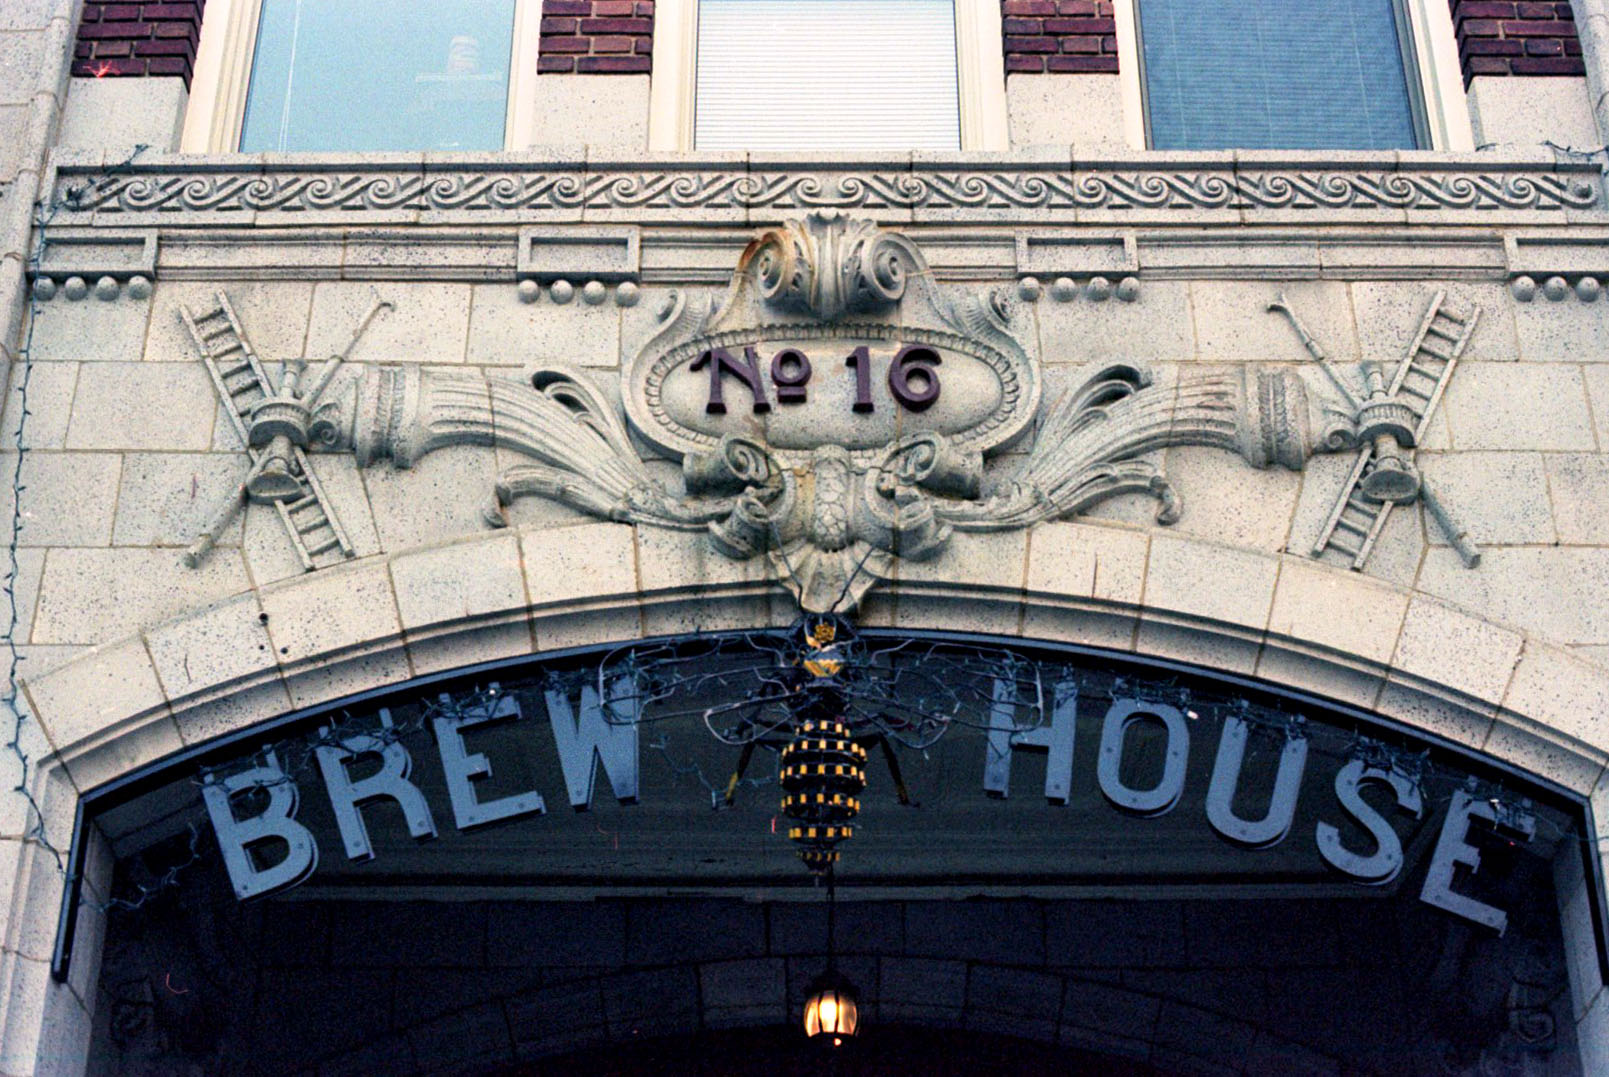 brew_house_no16_28486266233_o.jpg